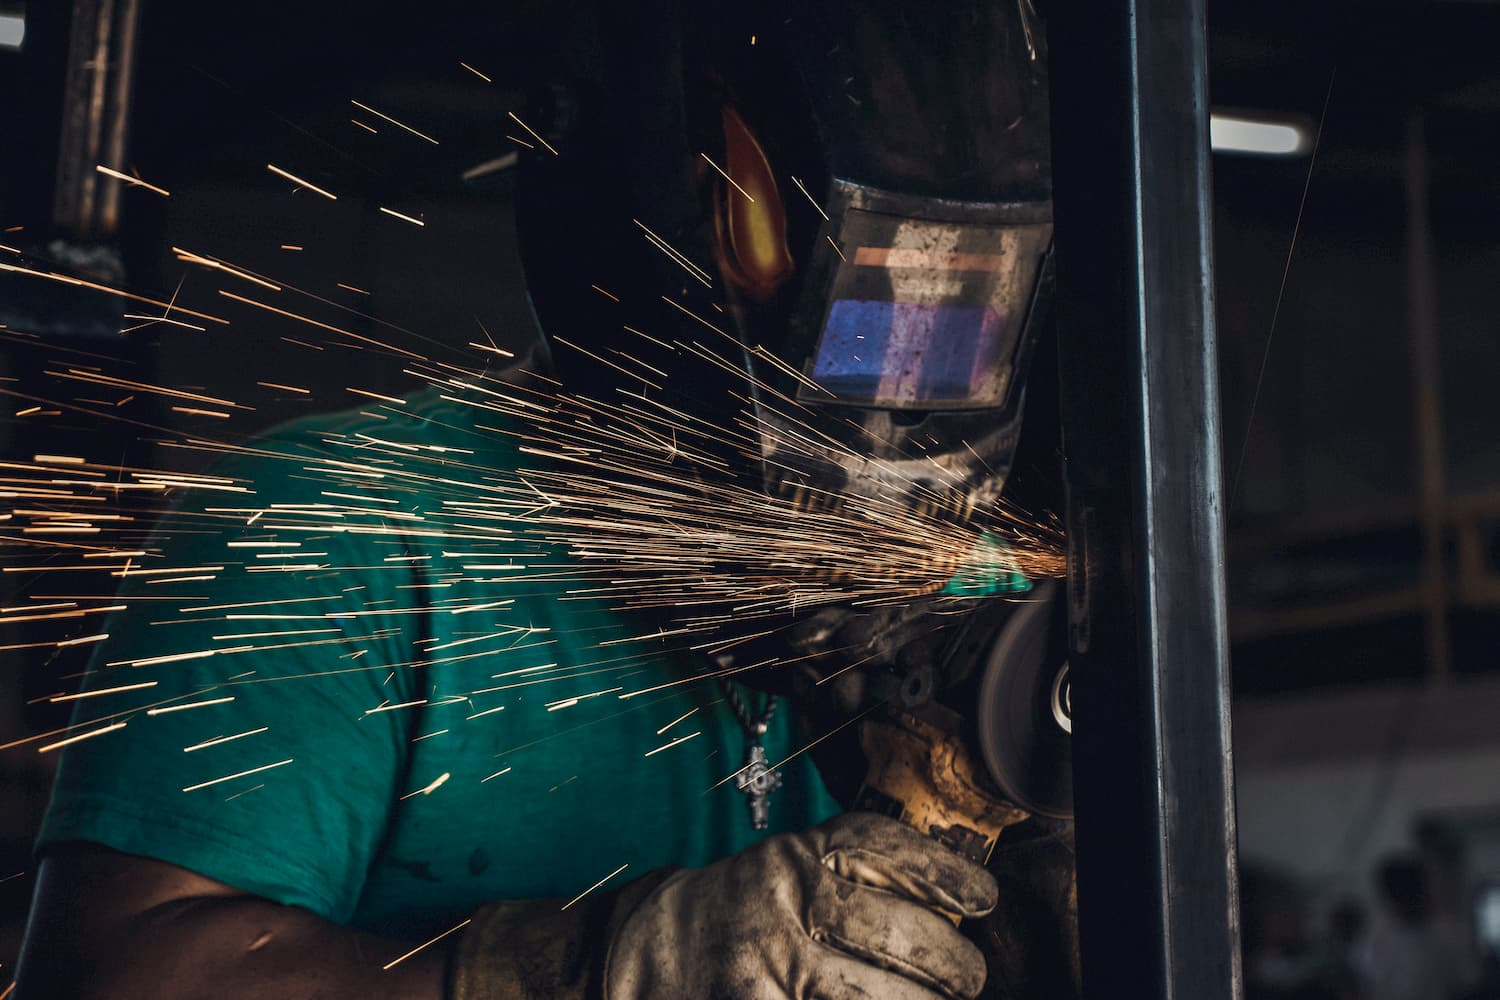 person using tool wearing protective equipment